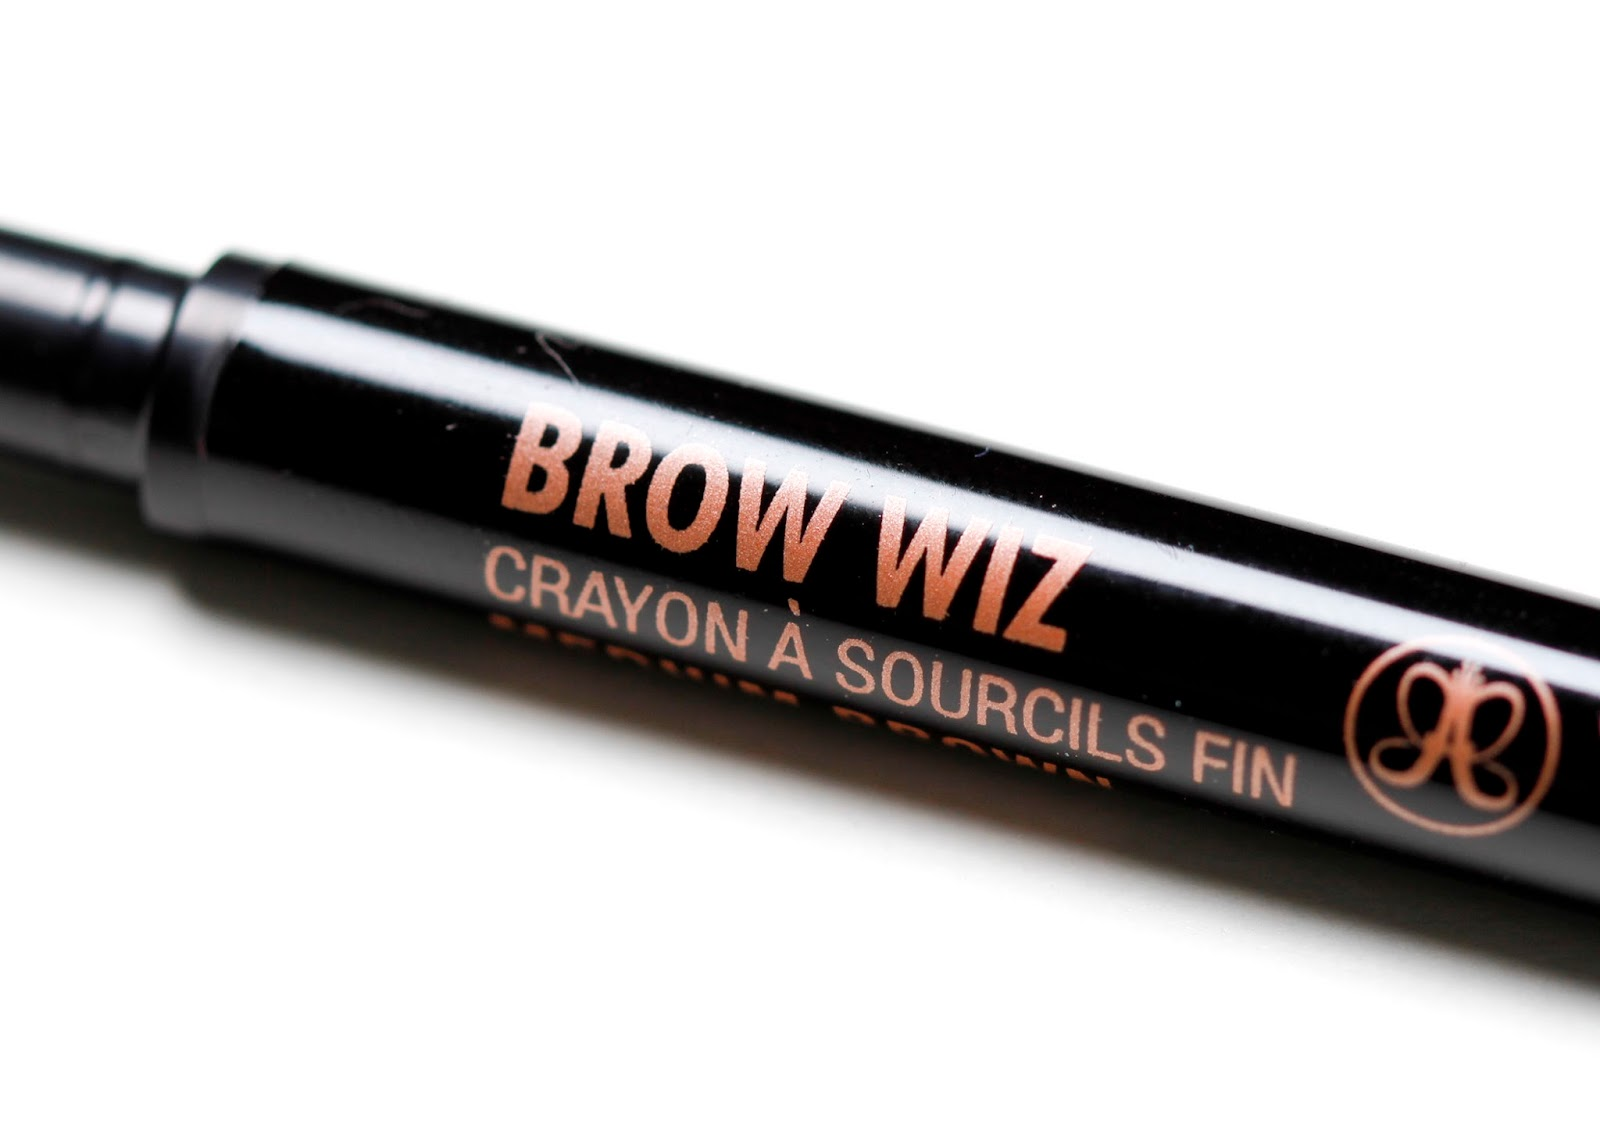 closeup shot of bronze lettering detail on side of brow wiz crayon